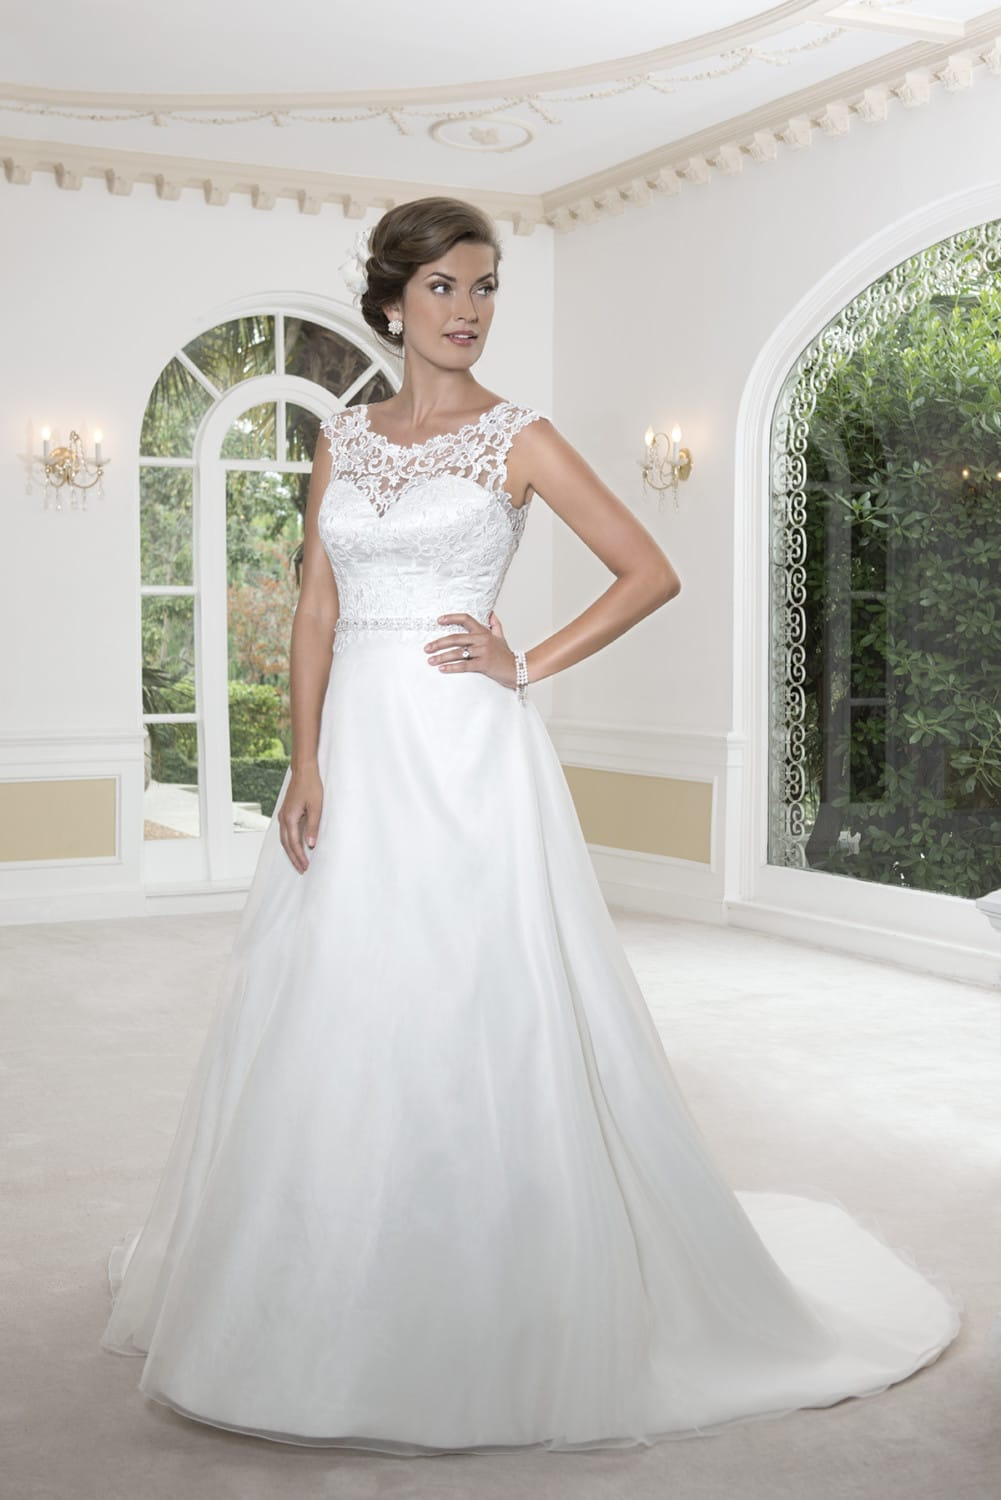 Venus Tara wedding dress